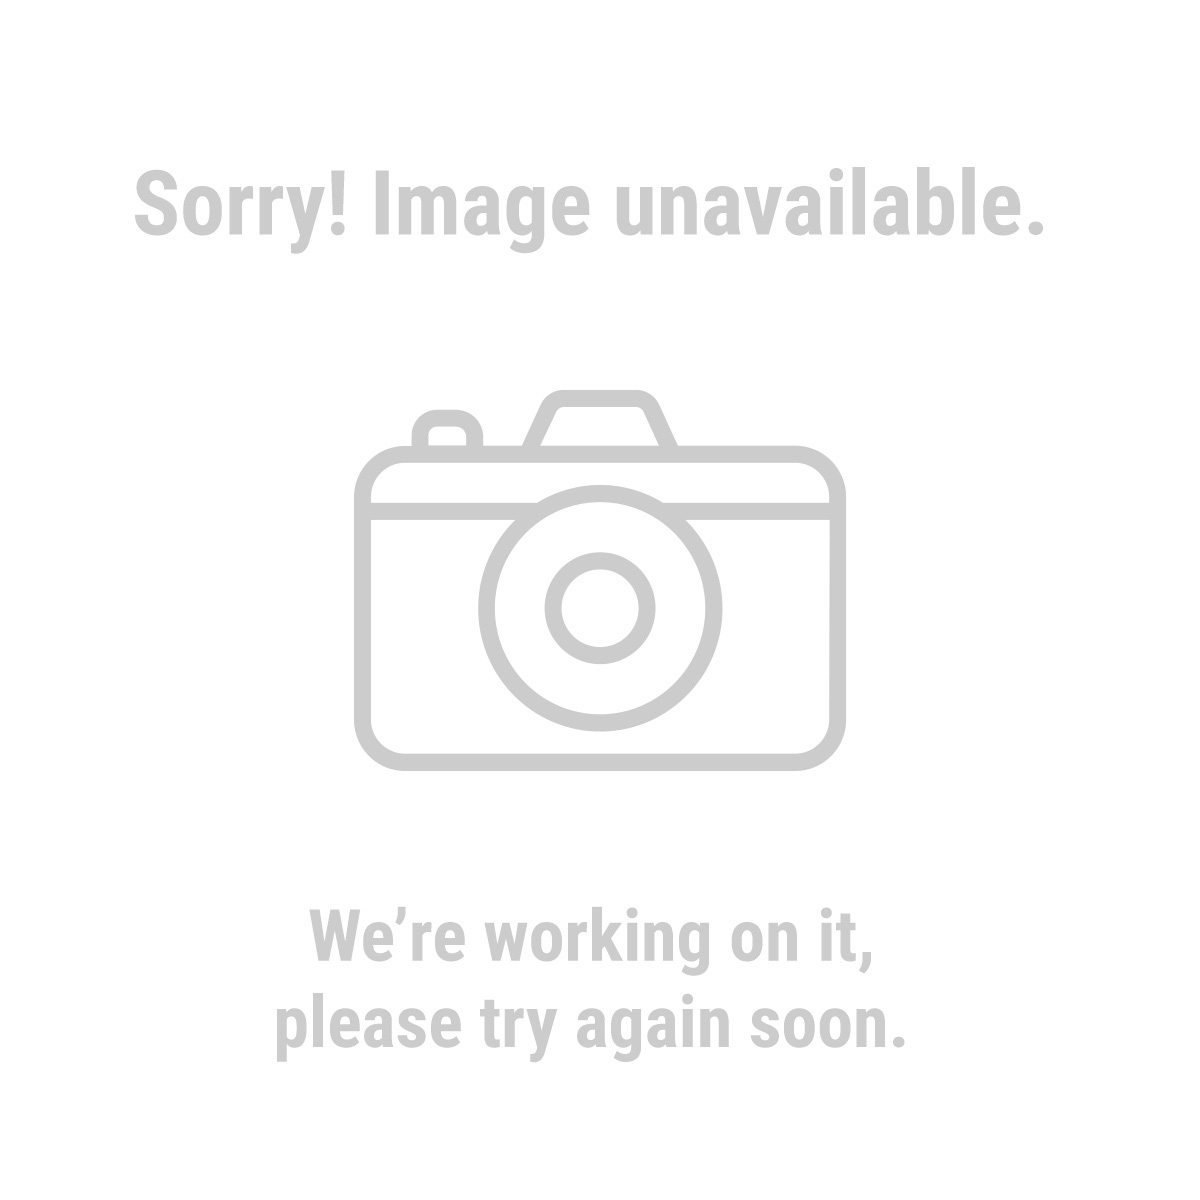 Garage Door Screens : Double garage screen door